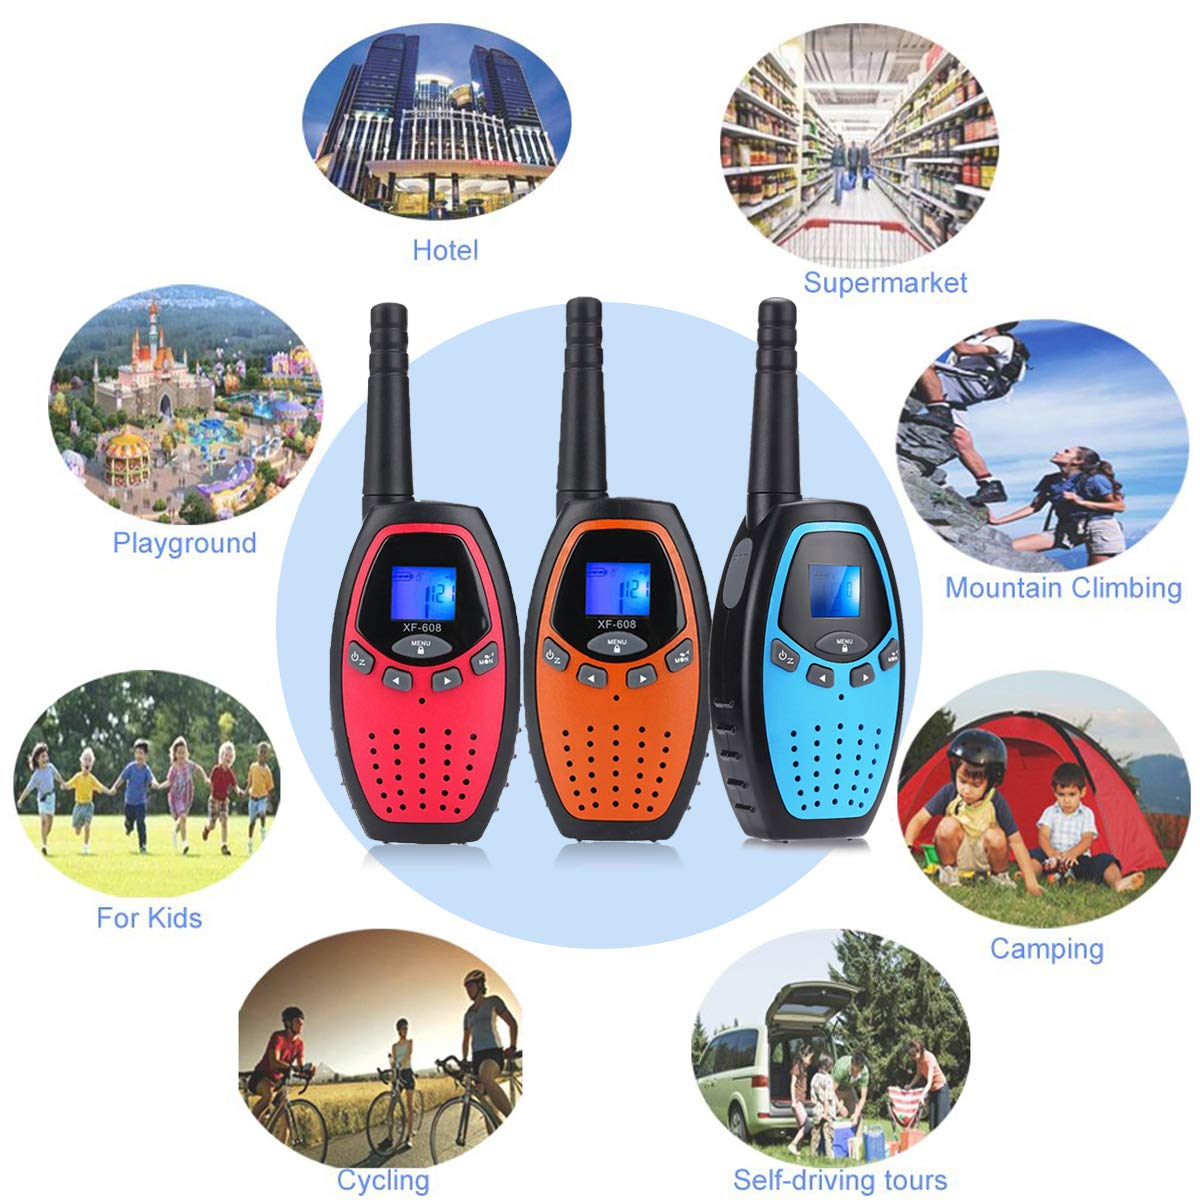 Fistone Walkie Talkies for Kids, 3 Packs 22 Channels 2 Way Radio Long Range Interphone Toys for Boy & Girls Age 3 6 7 8 9 12 Up for Outdoor Adventures, Camping, Hiking by Fistone (Image #3)